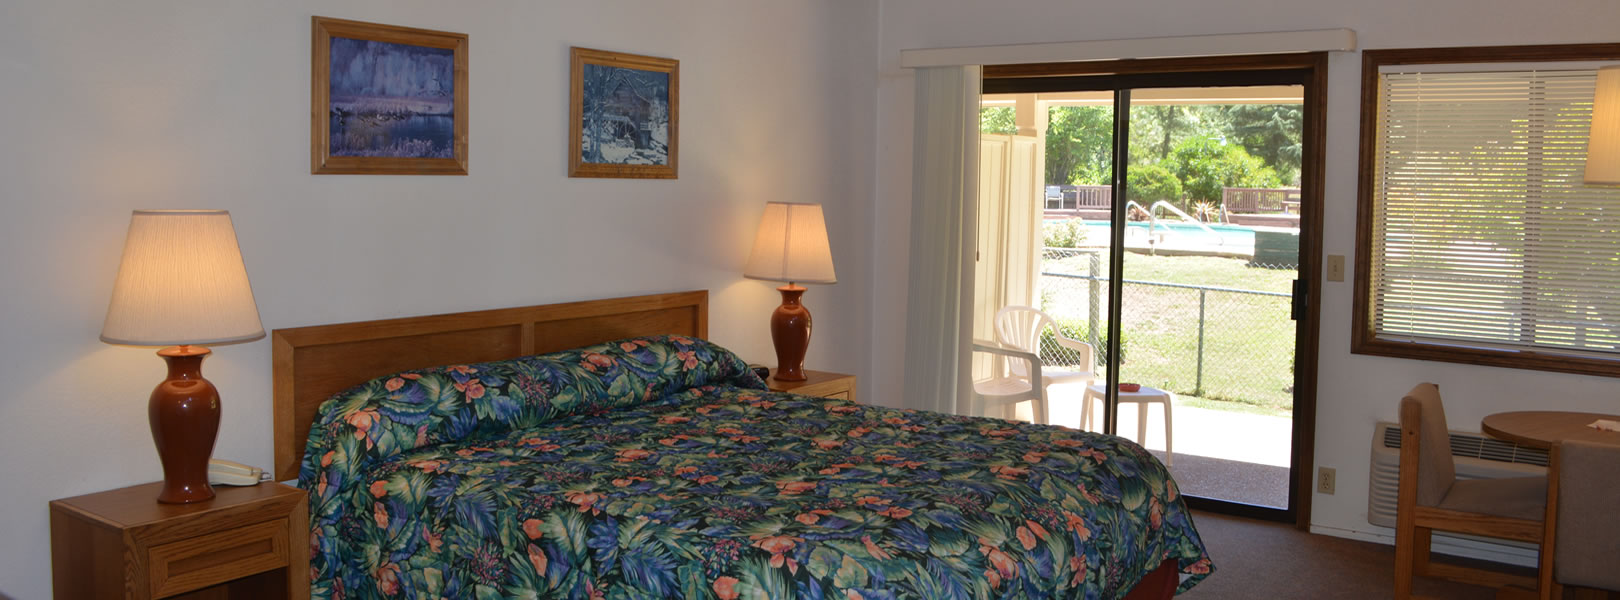 gold country hotel room